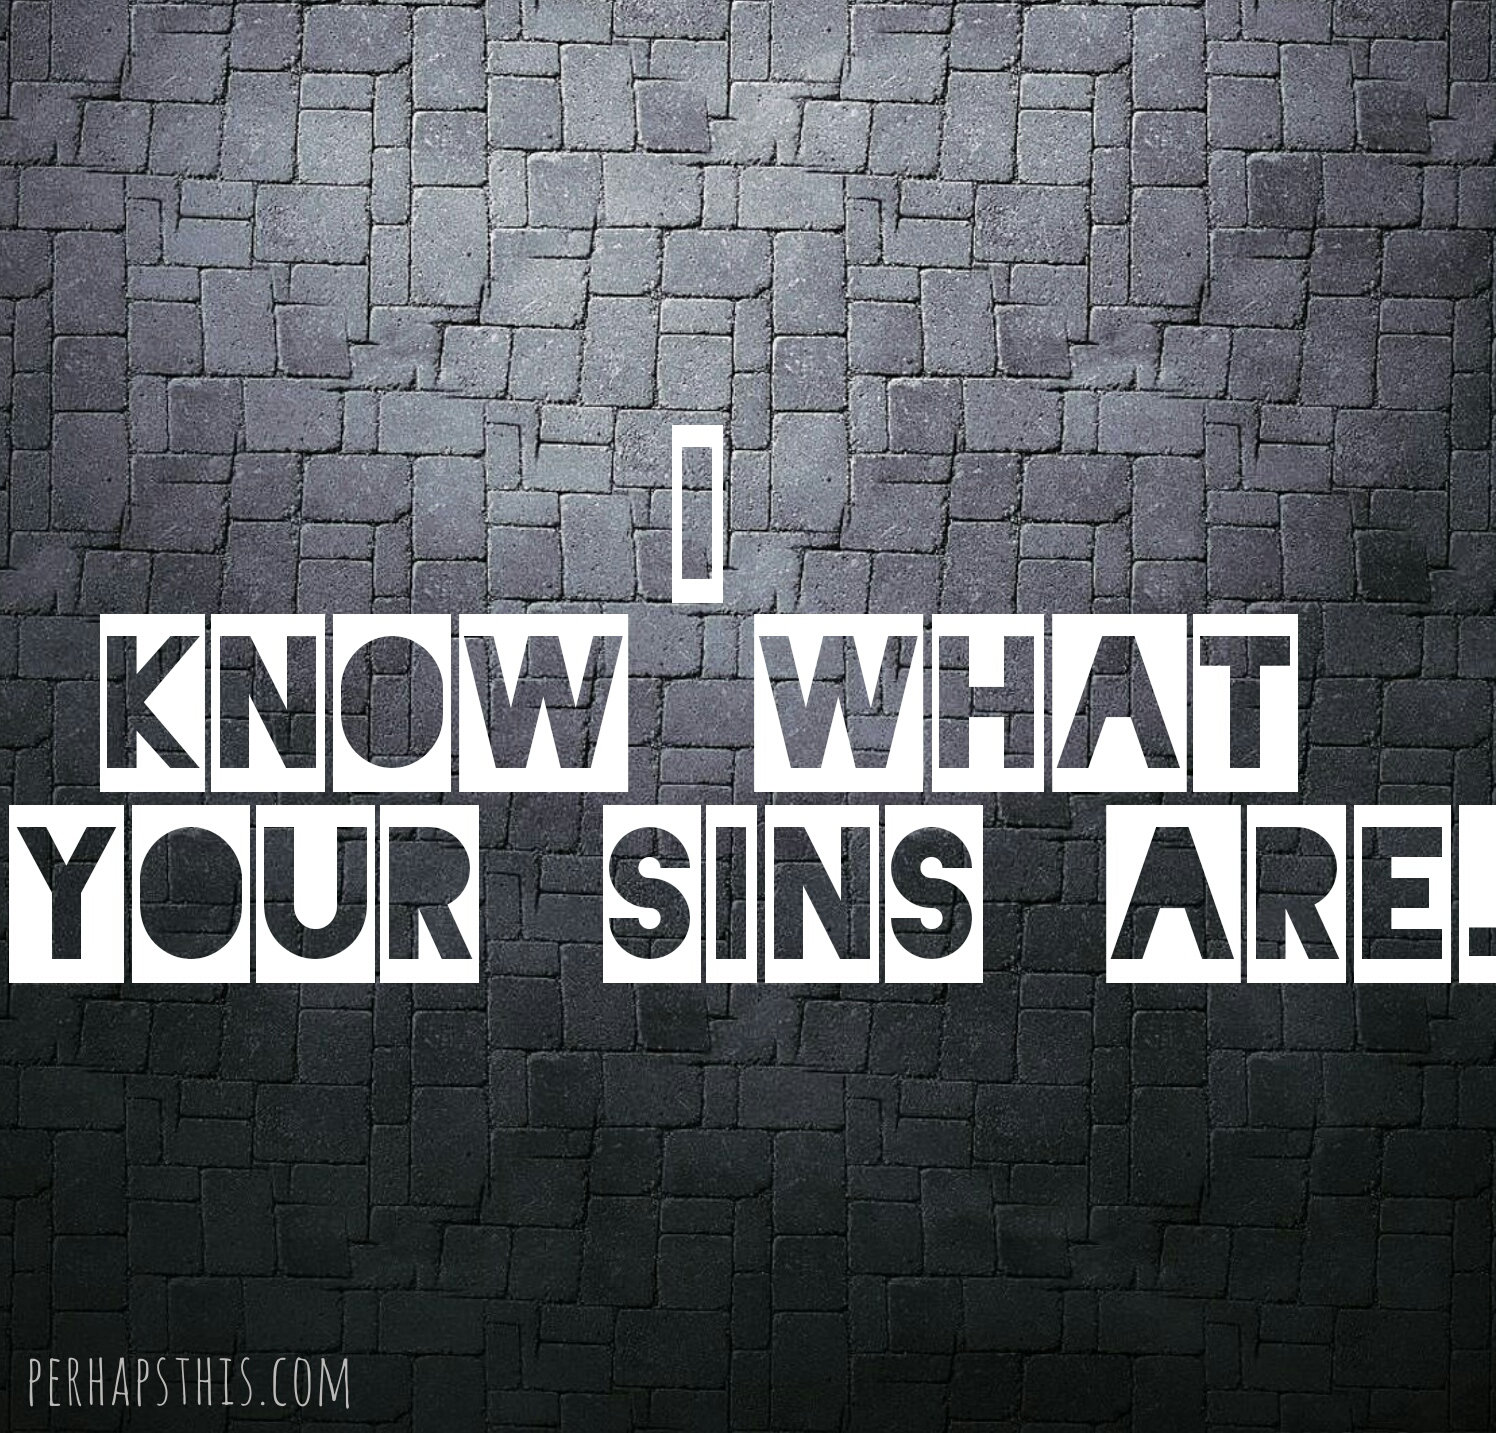 I Know What Your Sins Are